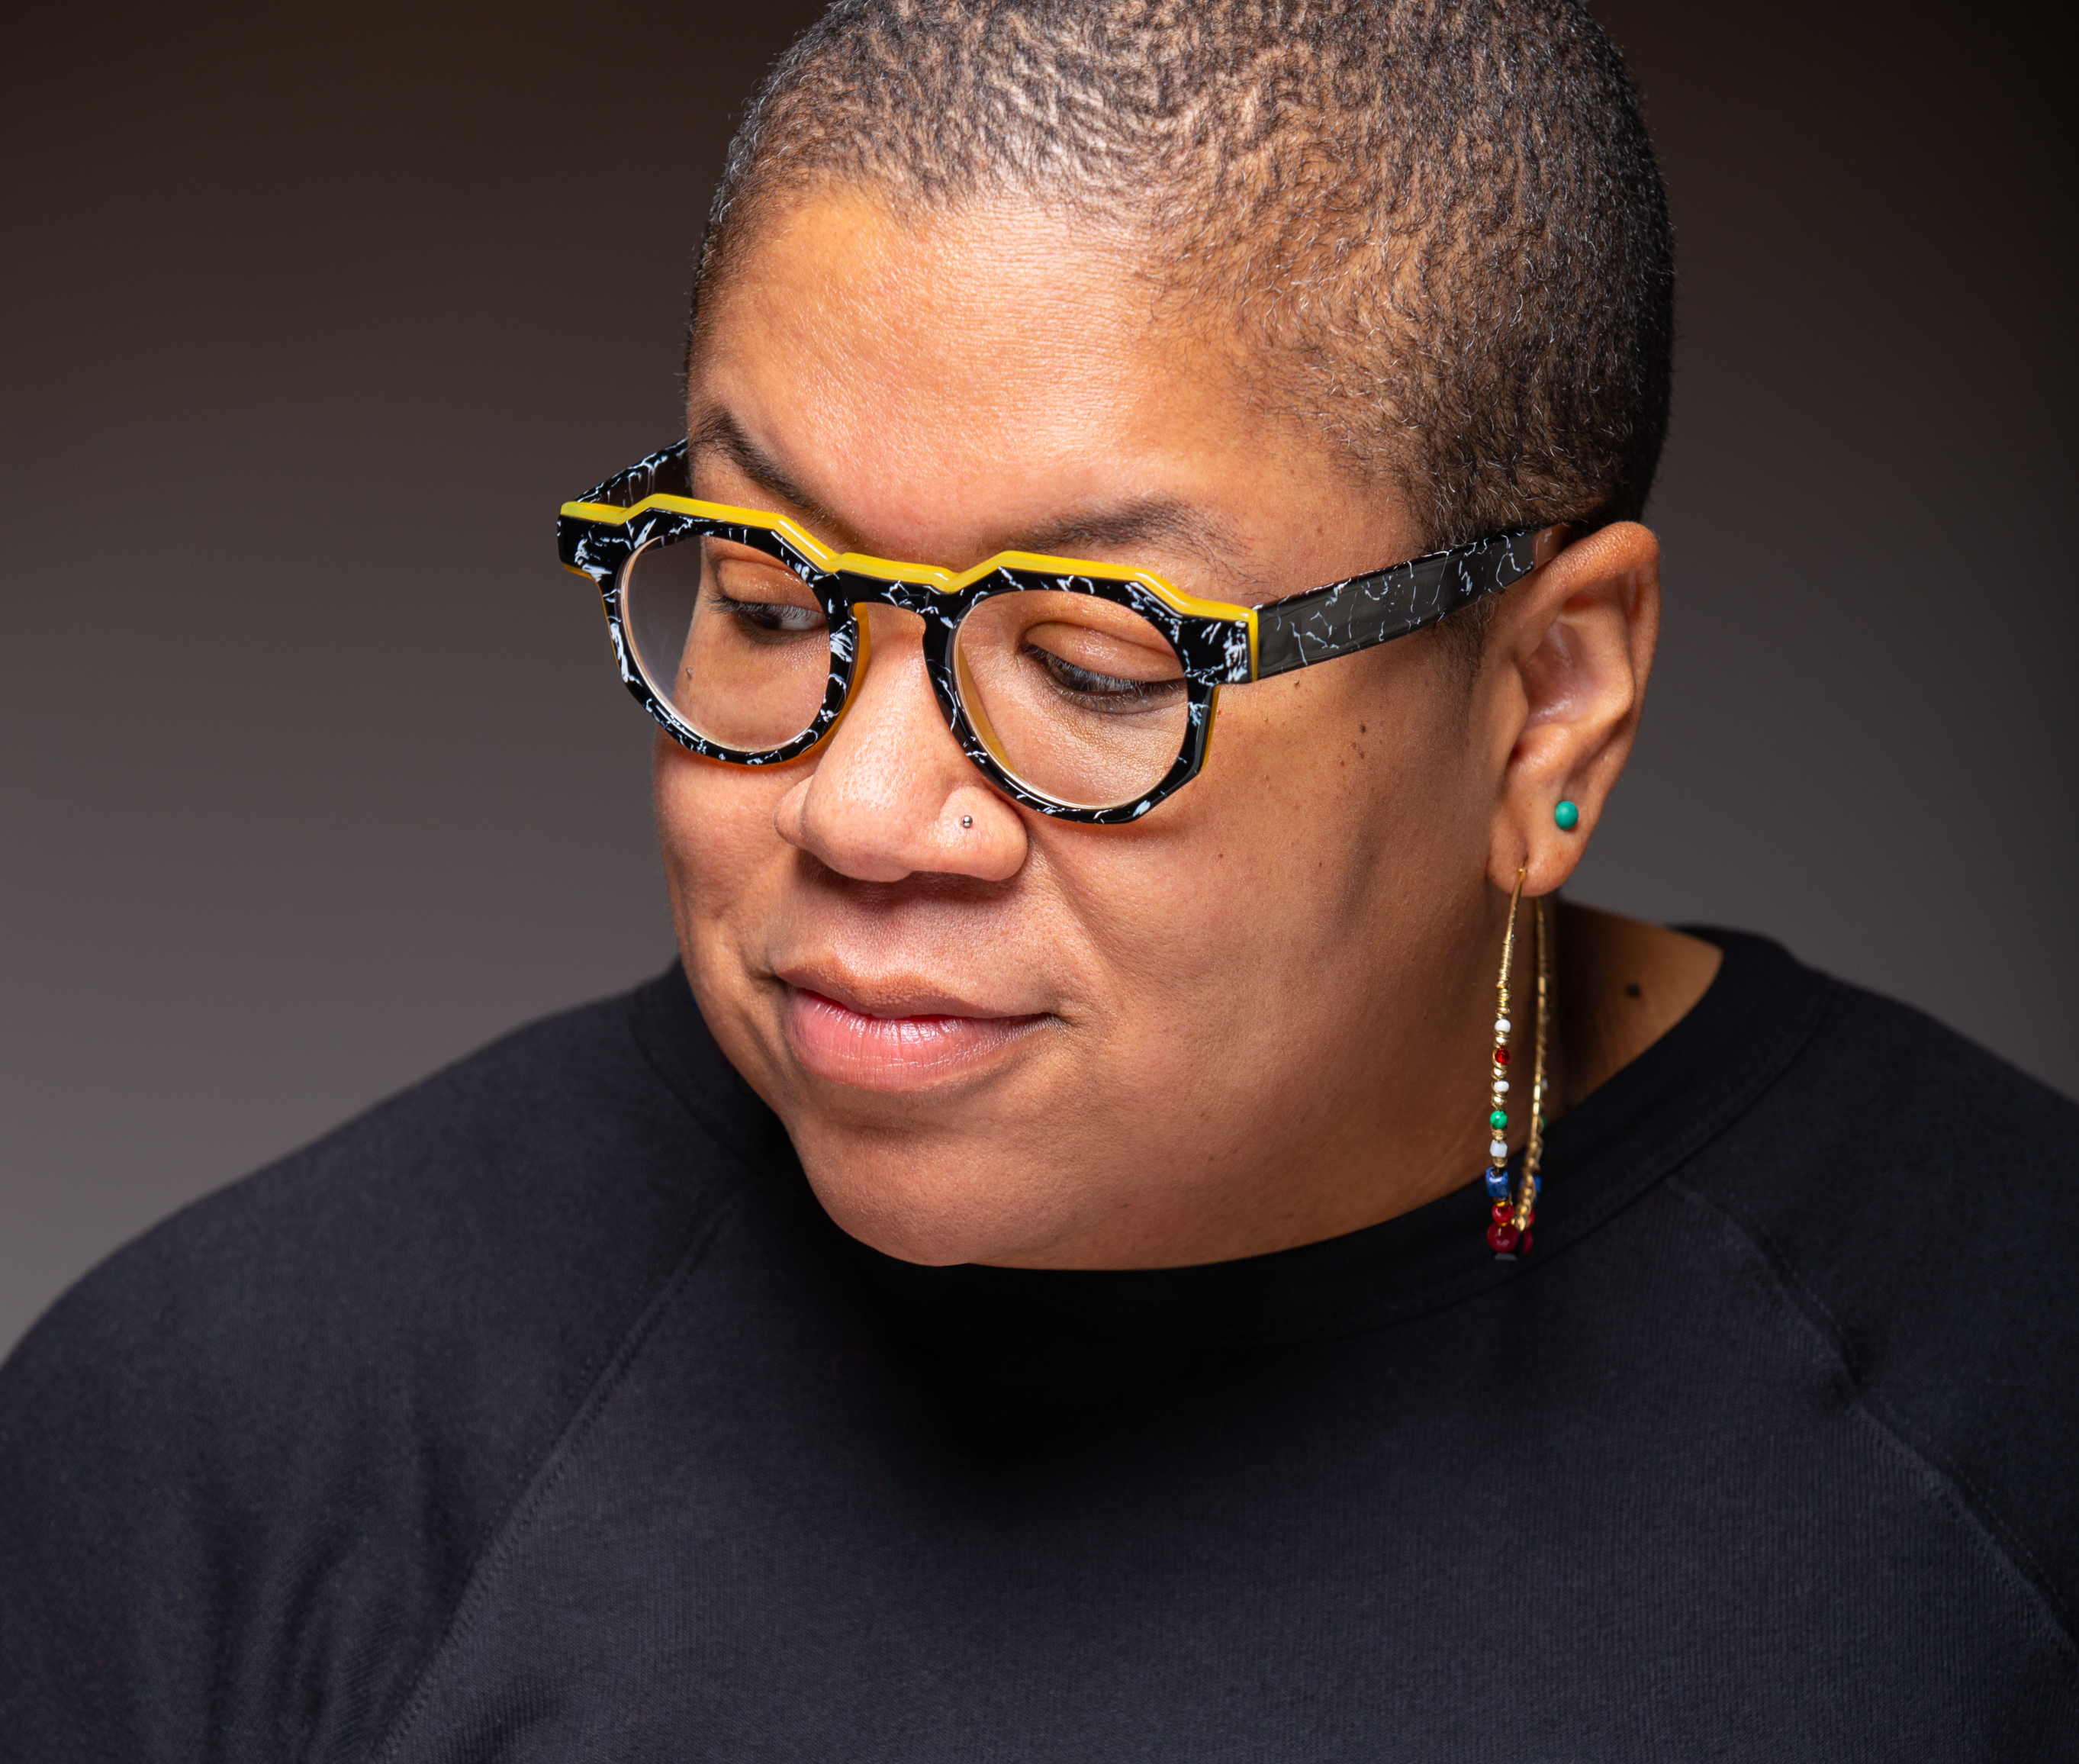 Samantha Irby, a Black woman with cropped hair, wears artful glasses with yellow detailing and a black t-shirt and looks away from the camera.